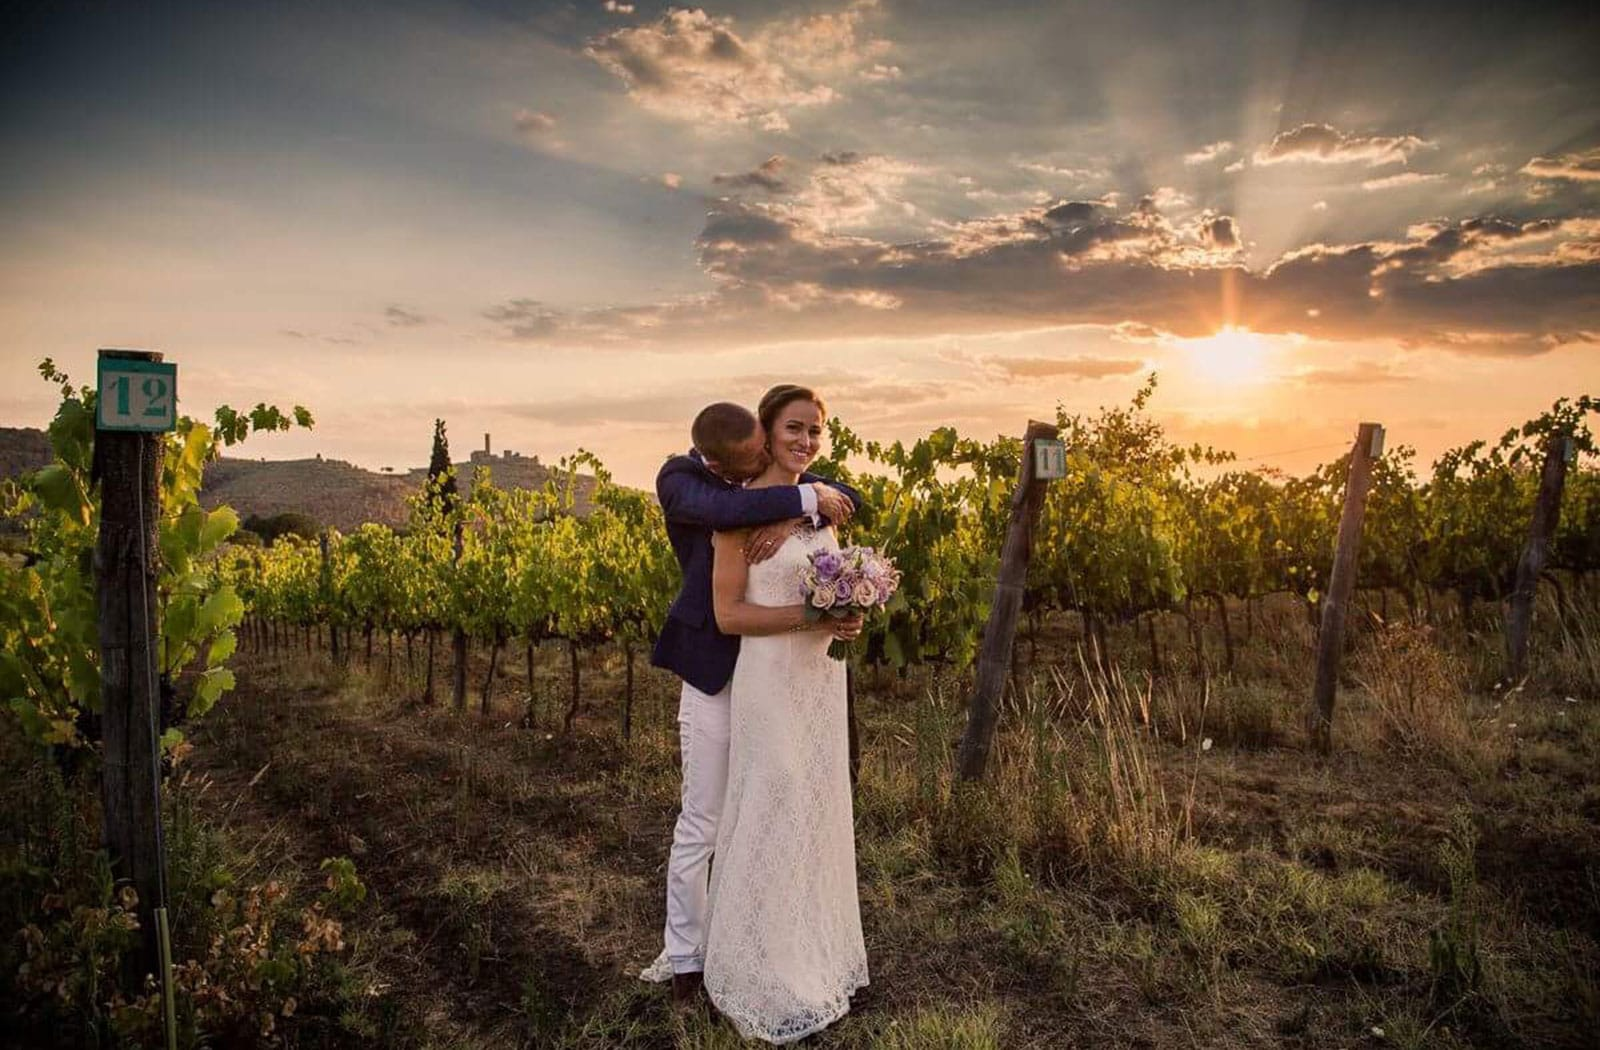 Villa for weddings in Castiglion Fiorentino